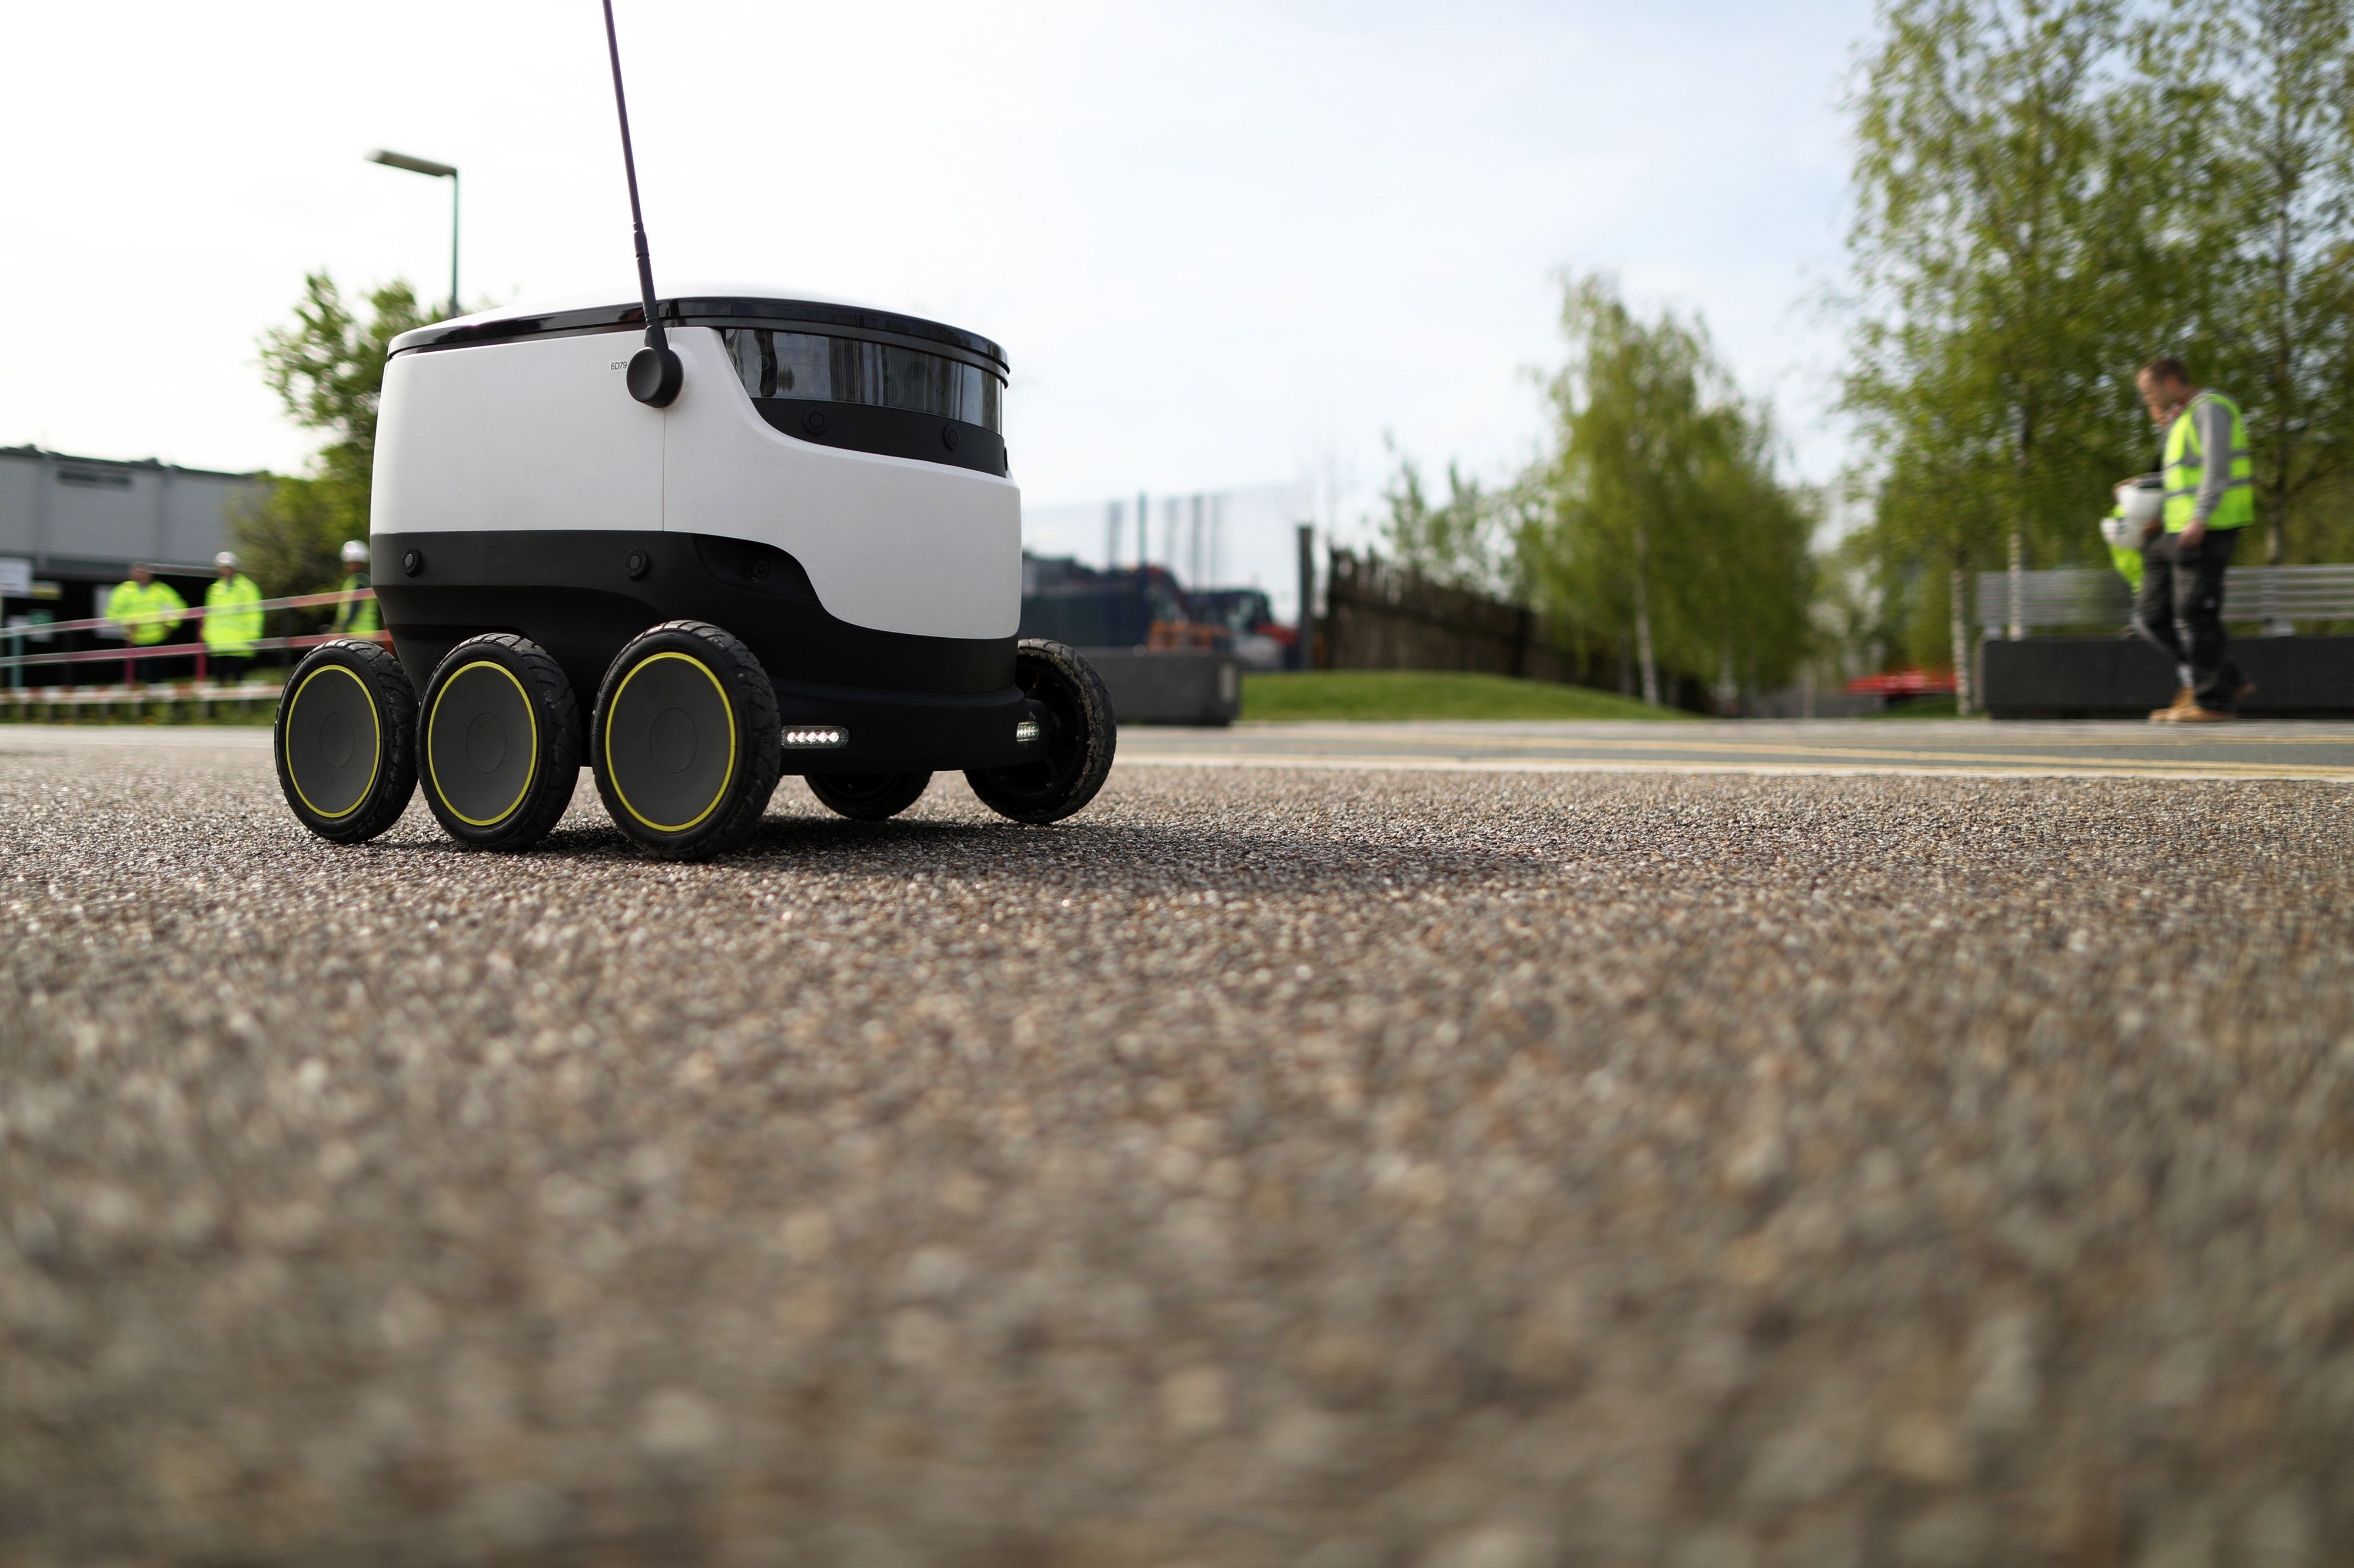 There's A Strong Chance That This Robot Could Soon Be Delivering Your